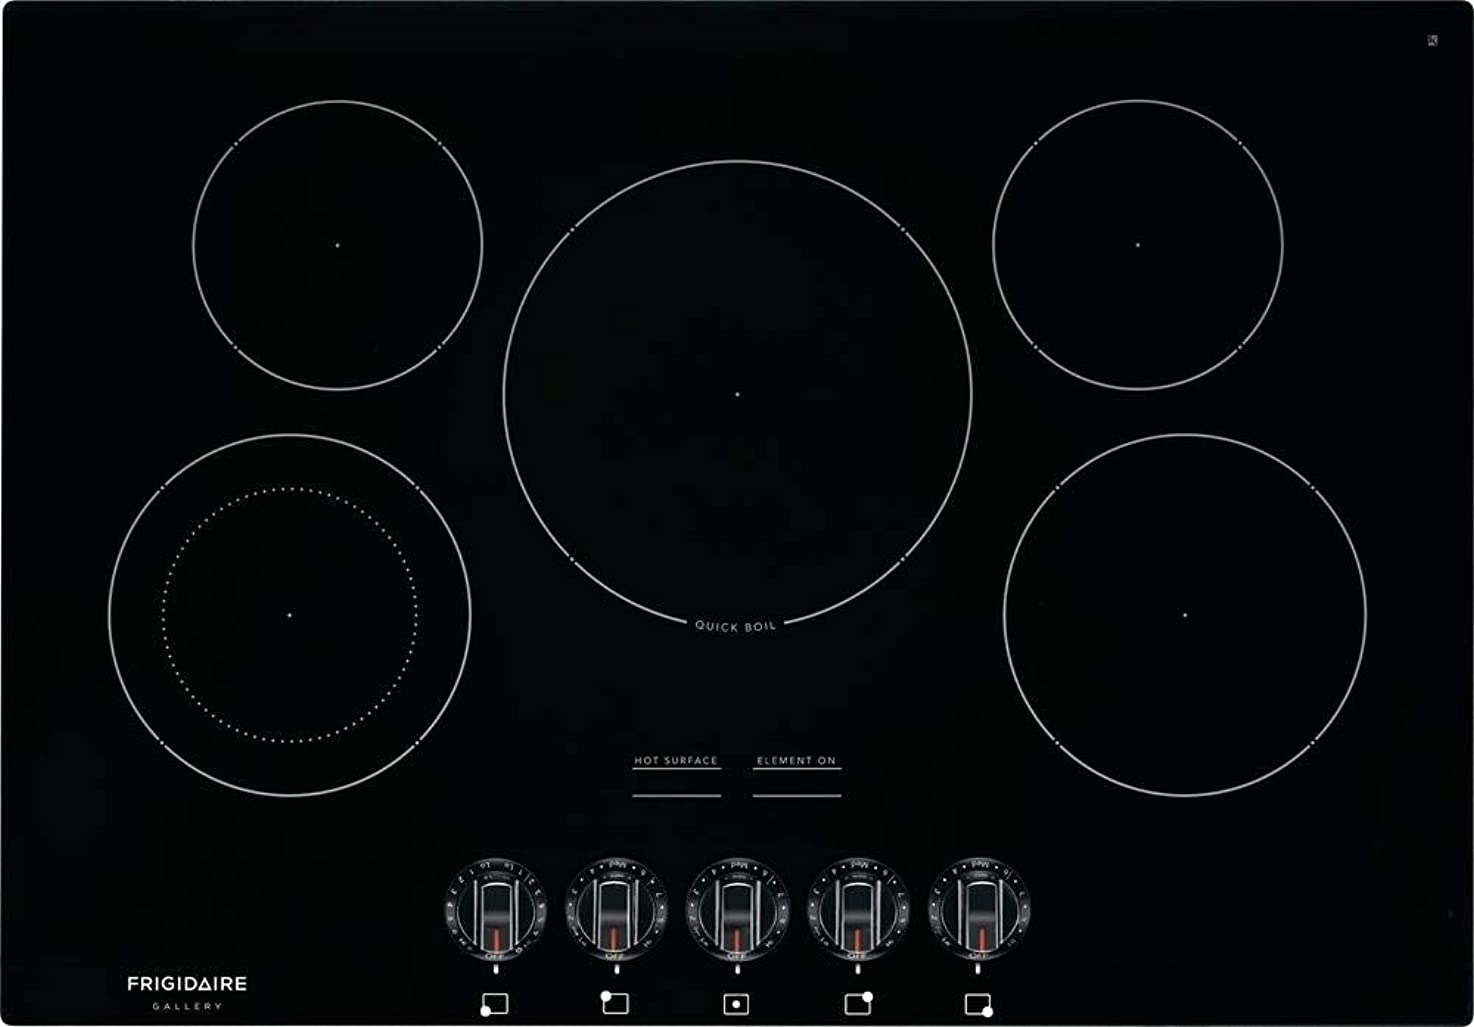 Frigidaire FGEC3068UB Gallery Series 30 Inch Electric Smoothtop Style Cooktop with 5 Elements in Black imifqwtrwkebf3